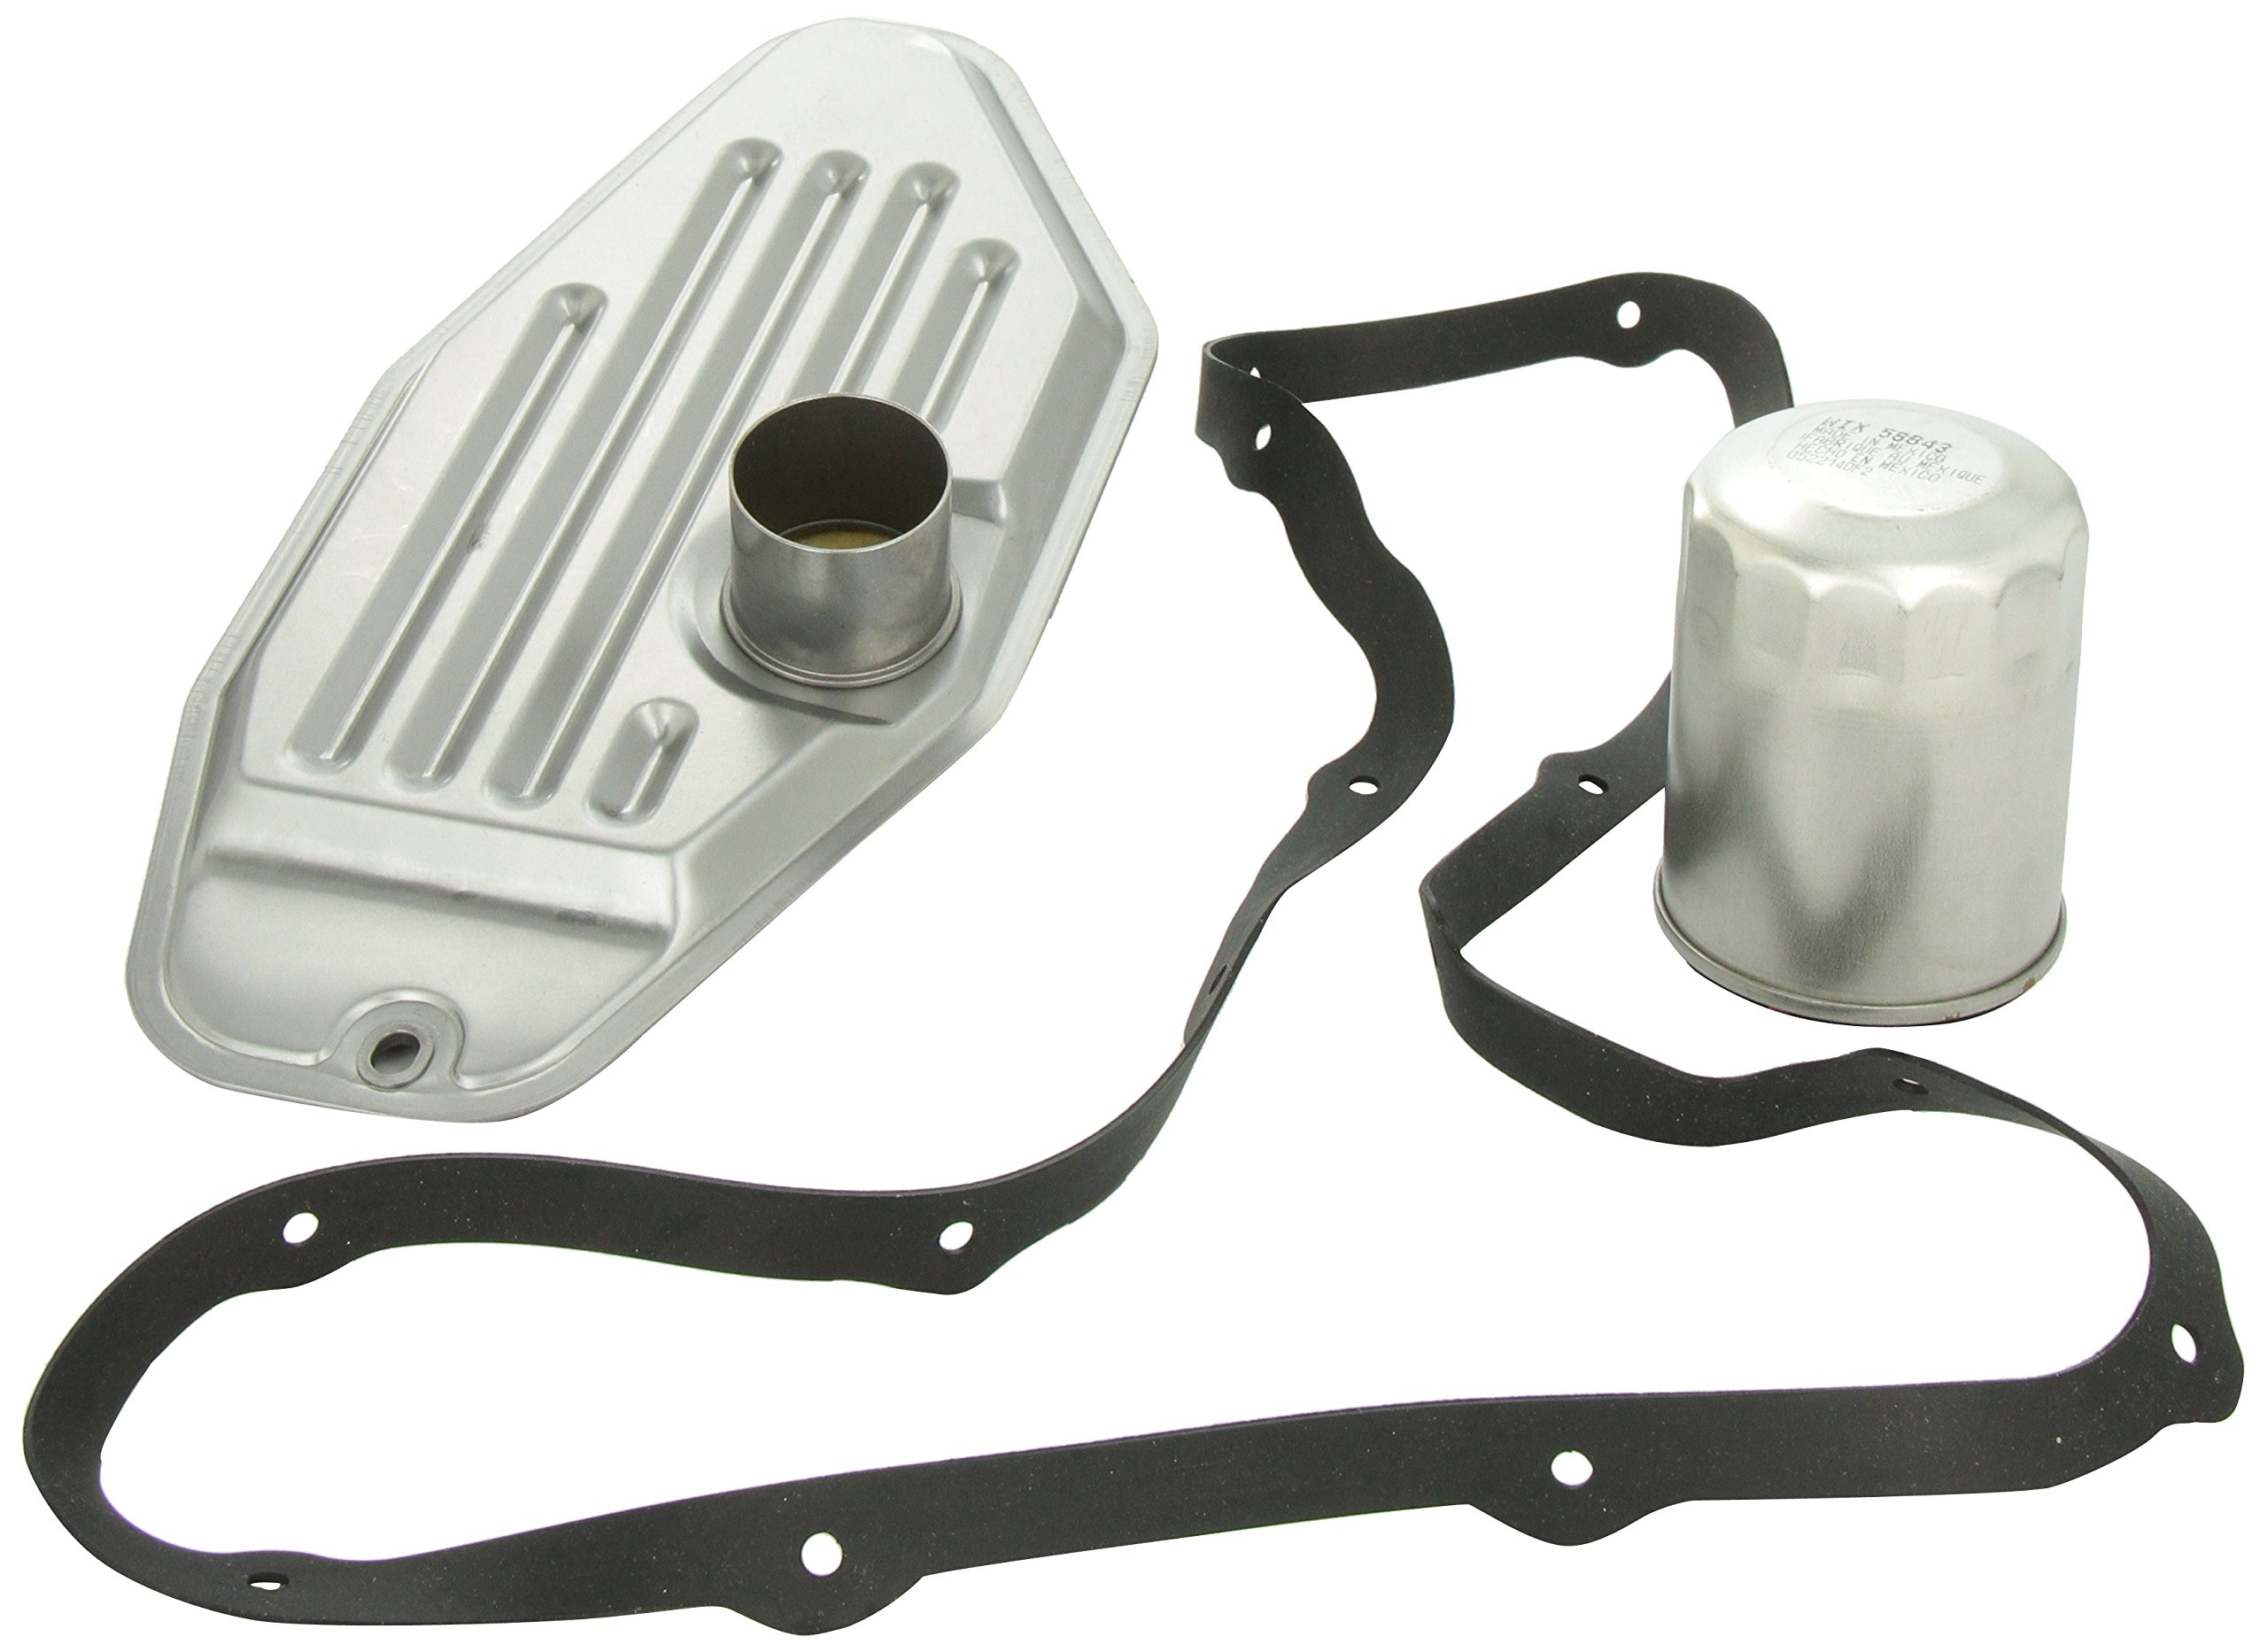 WIX Transmission Filter with Gasket 58877 TF286 T626 FT1144 FT1144A P1217